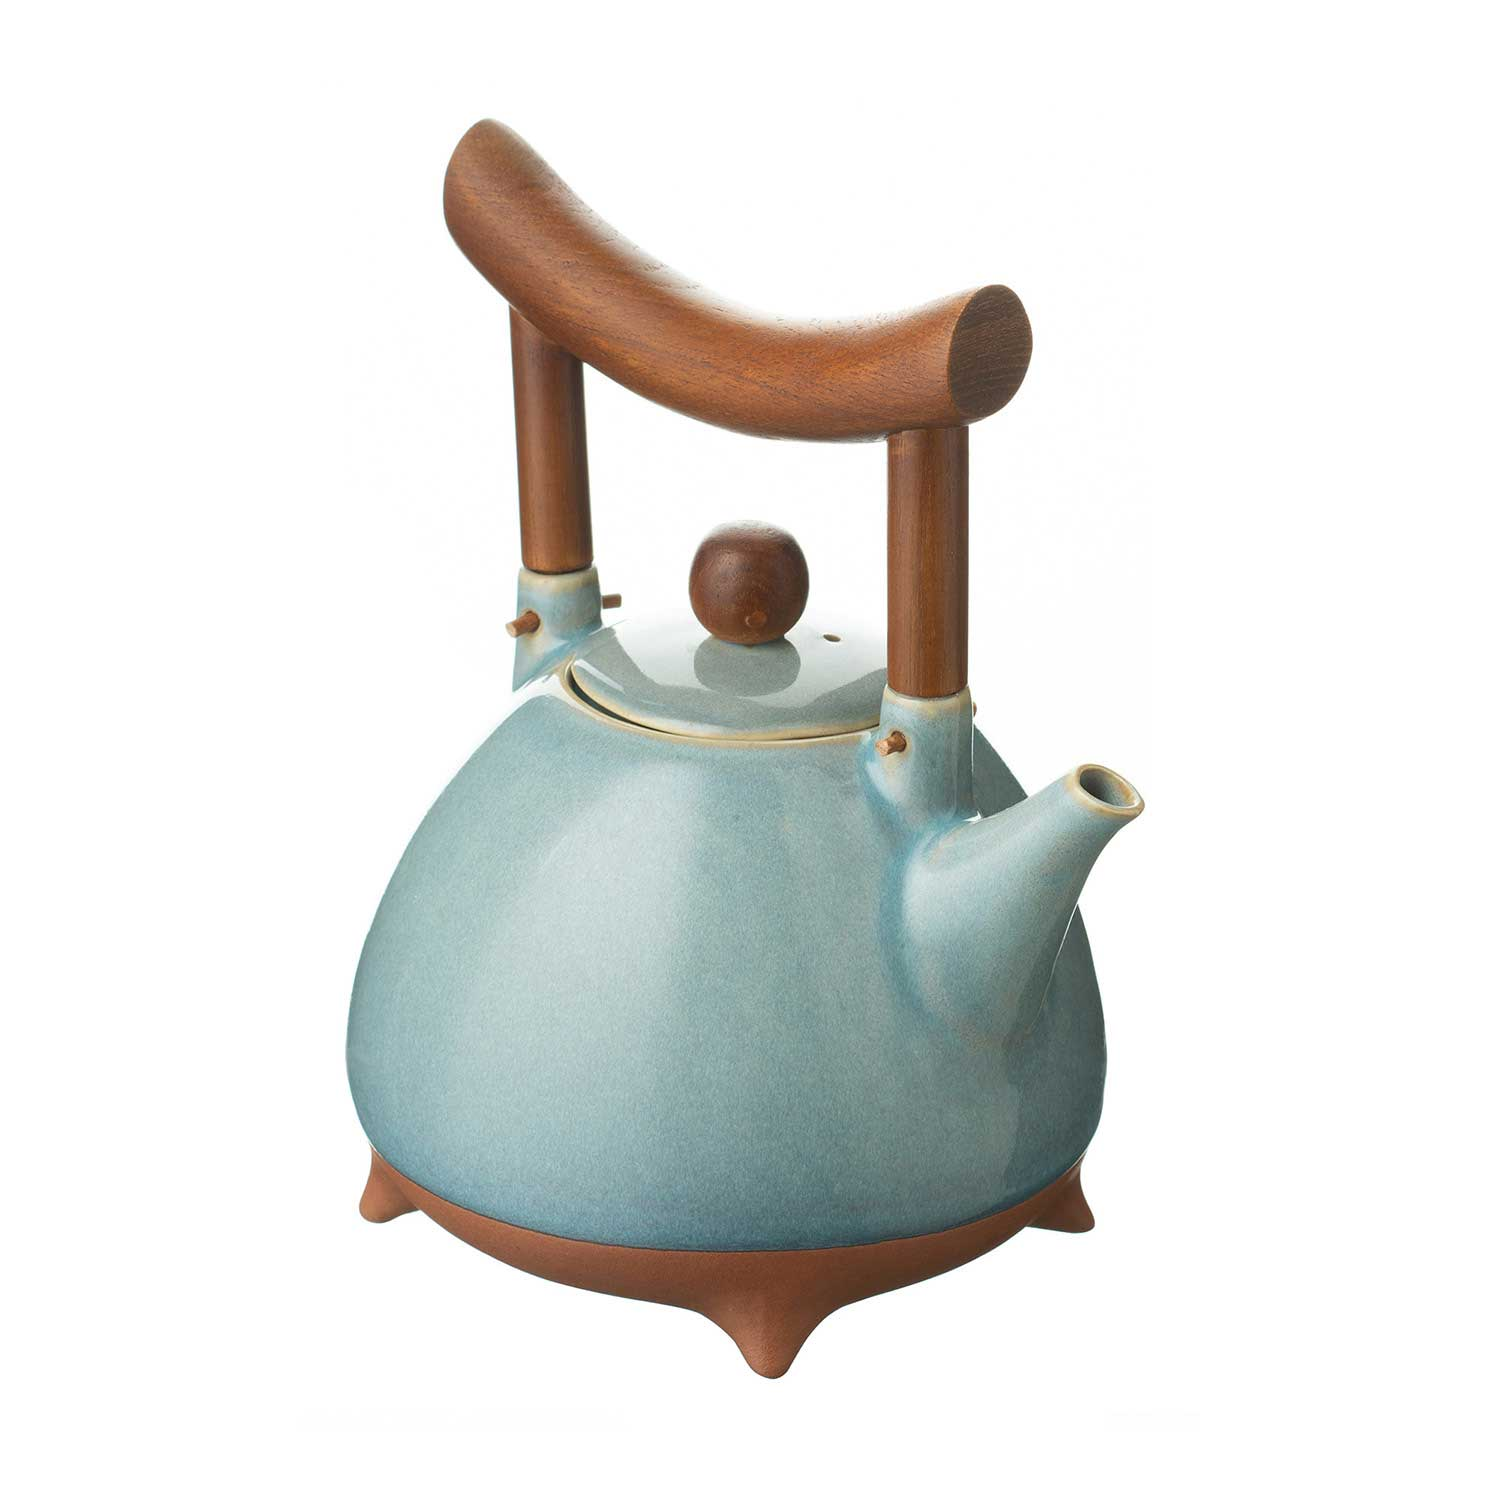 Japanese Pasih Tea Pot